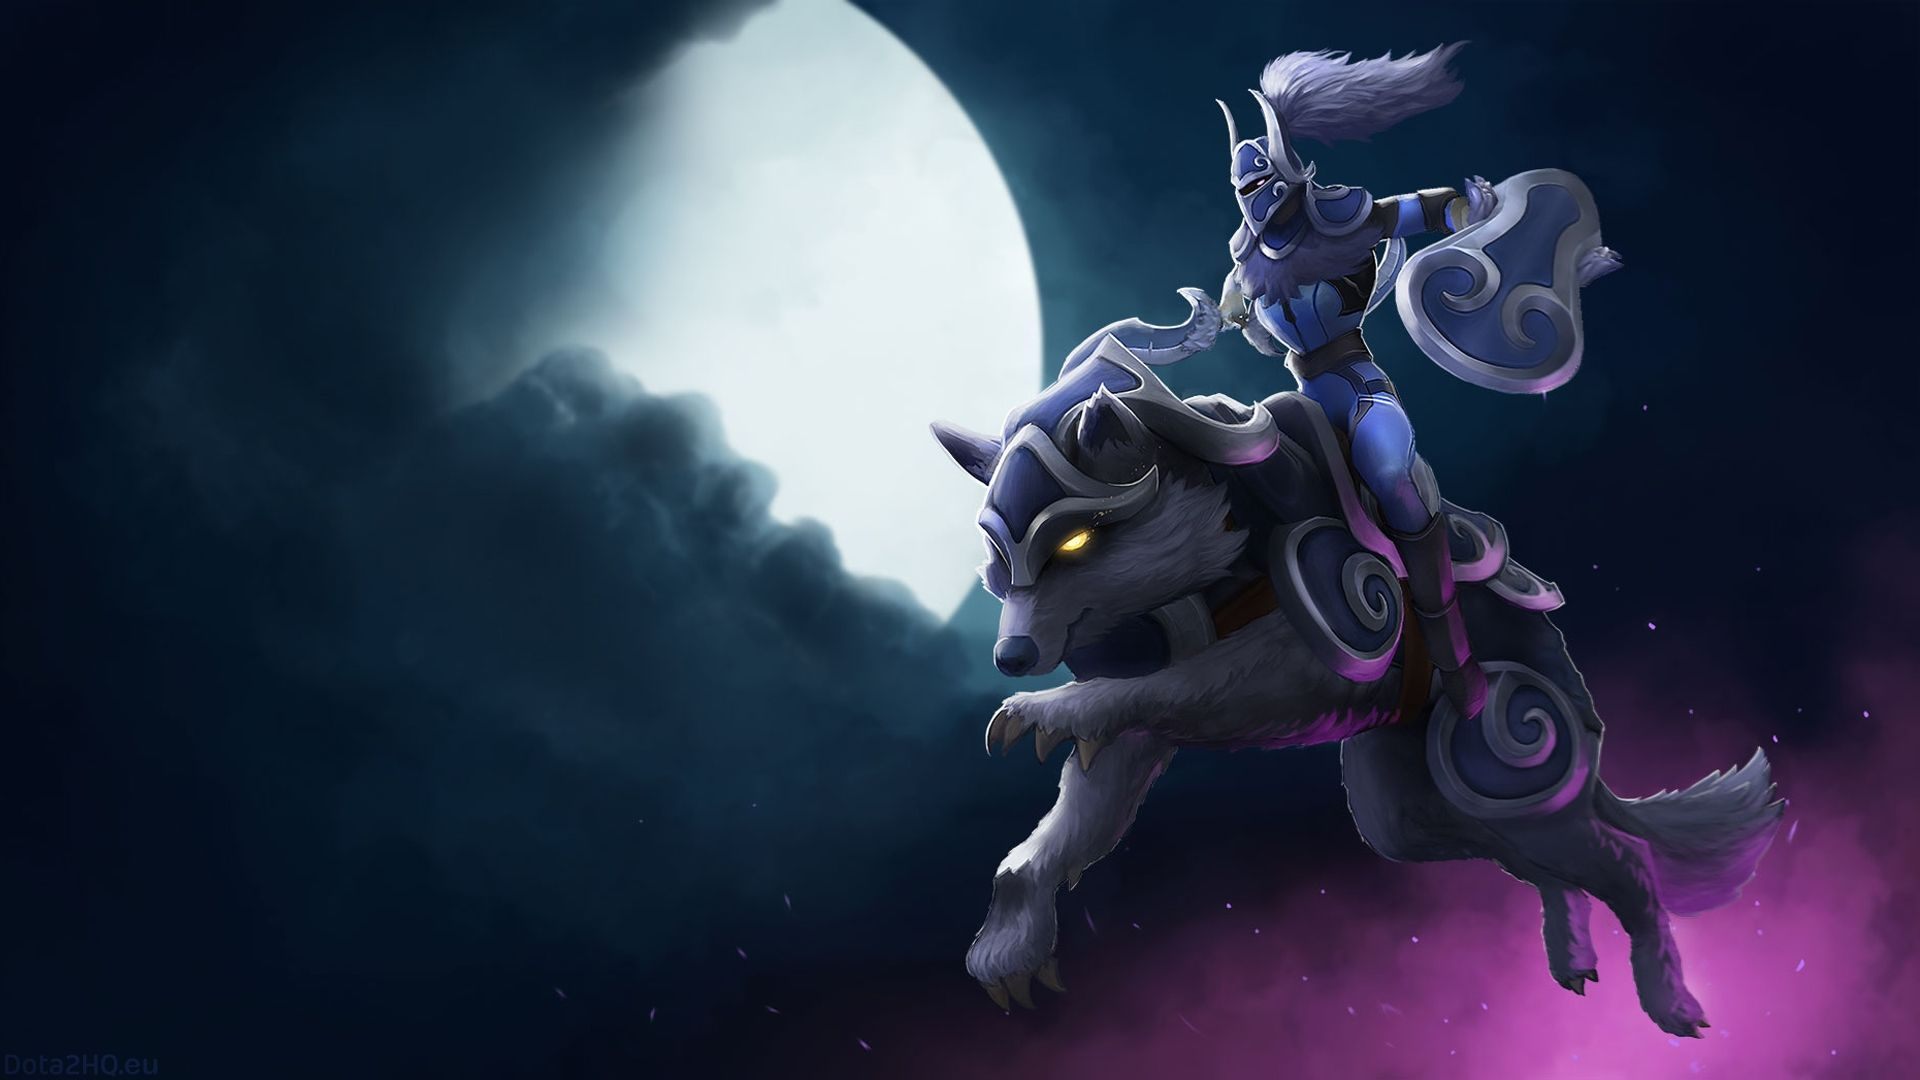 The Wallpaper Depicts Heroes Luna Dota